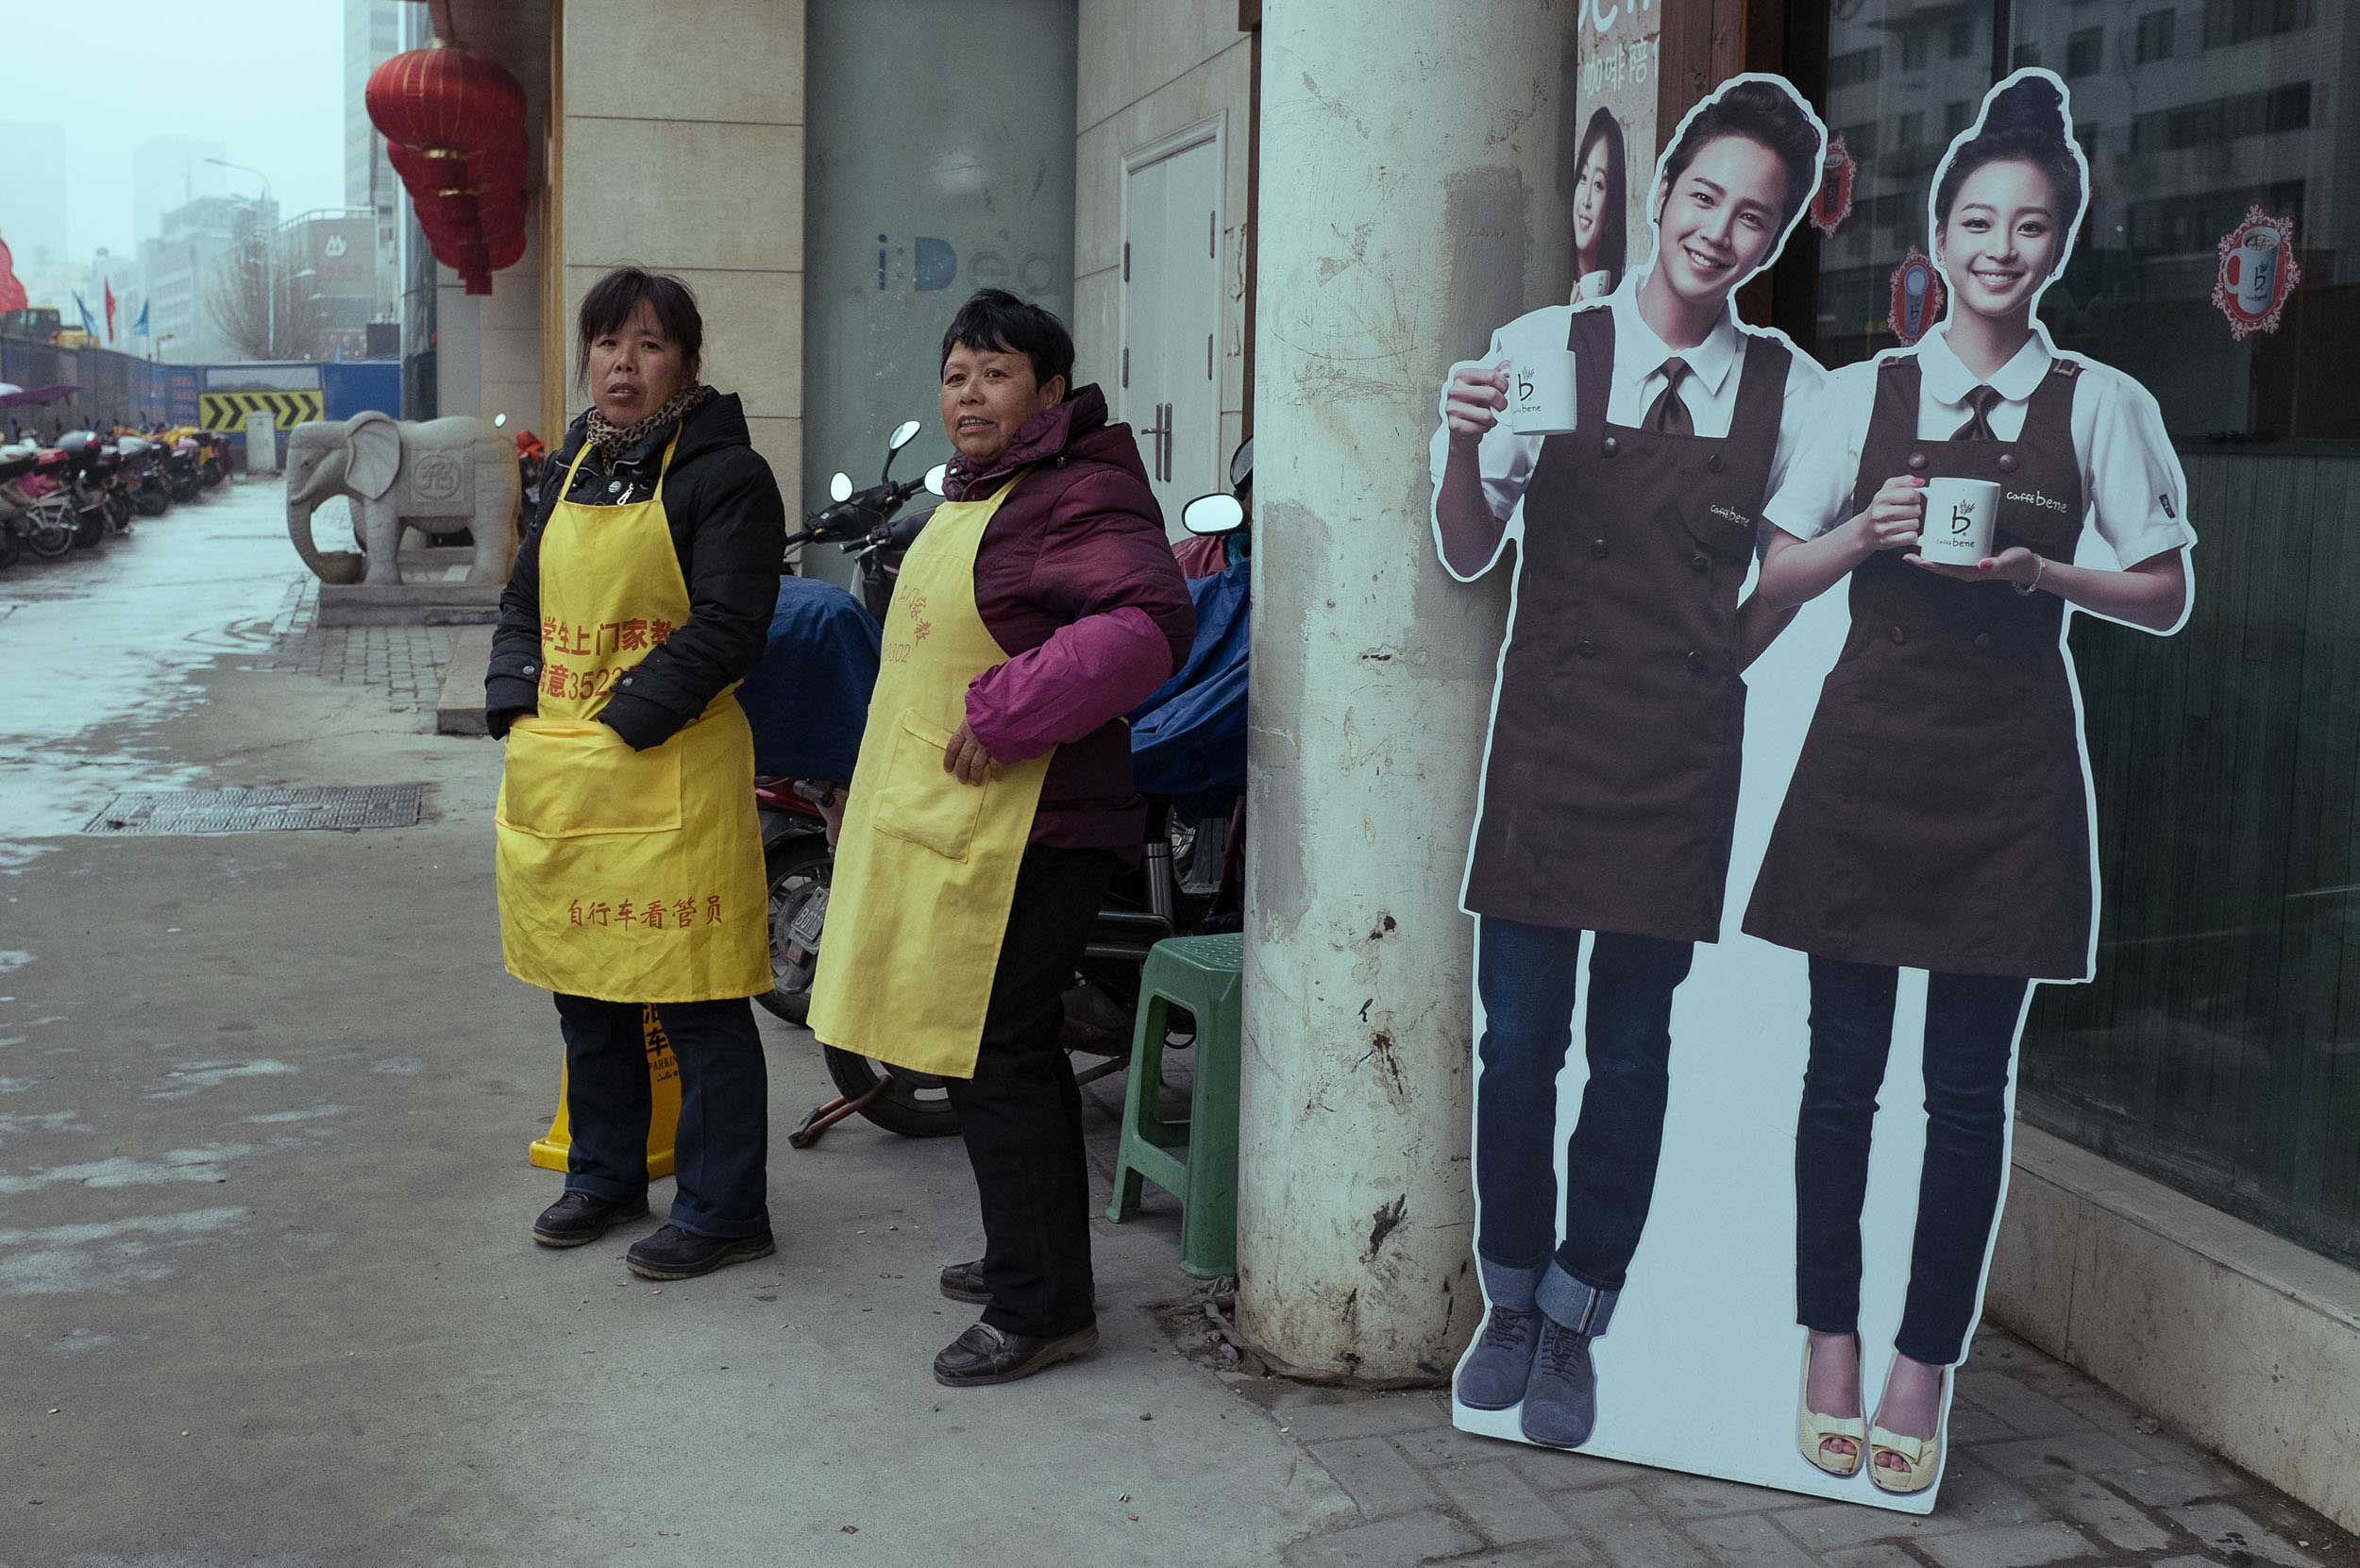 Street of China / Tao Liu (4)